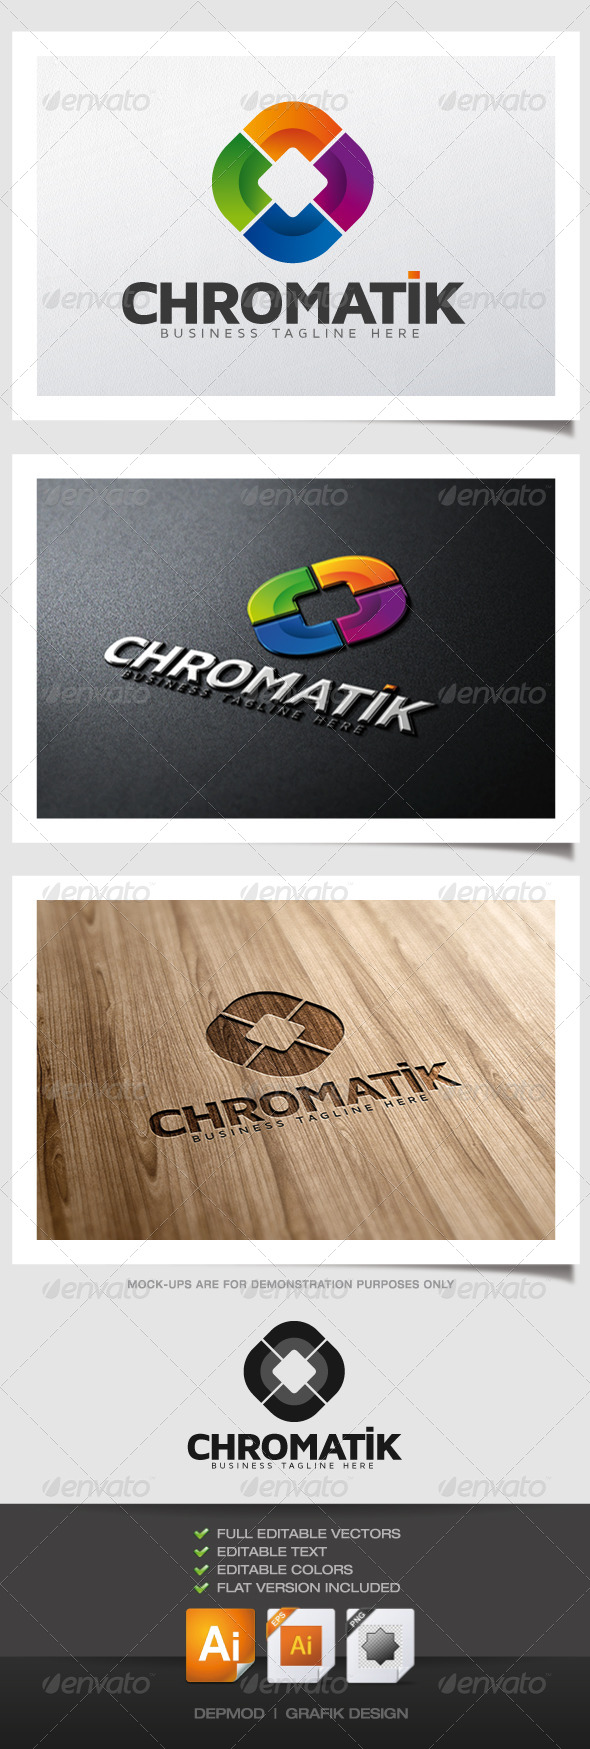 Chromatik Logo - Abstract Logo Templates